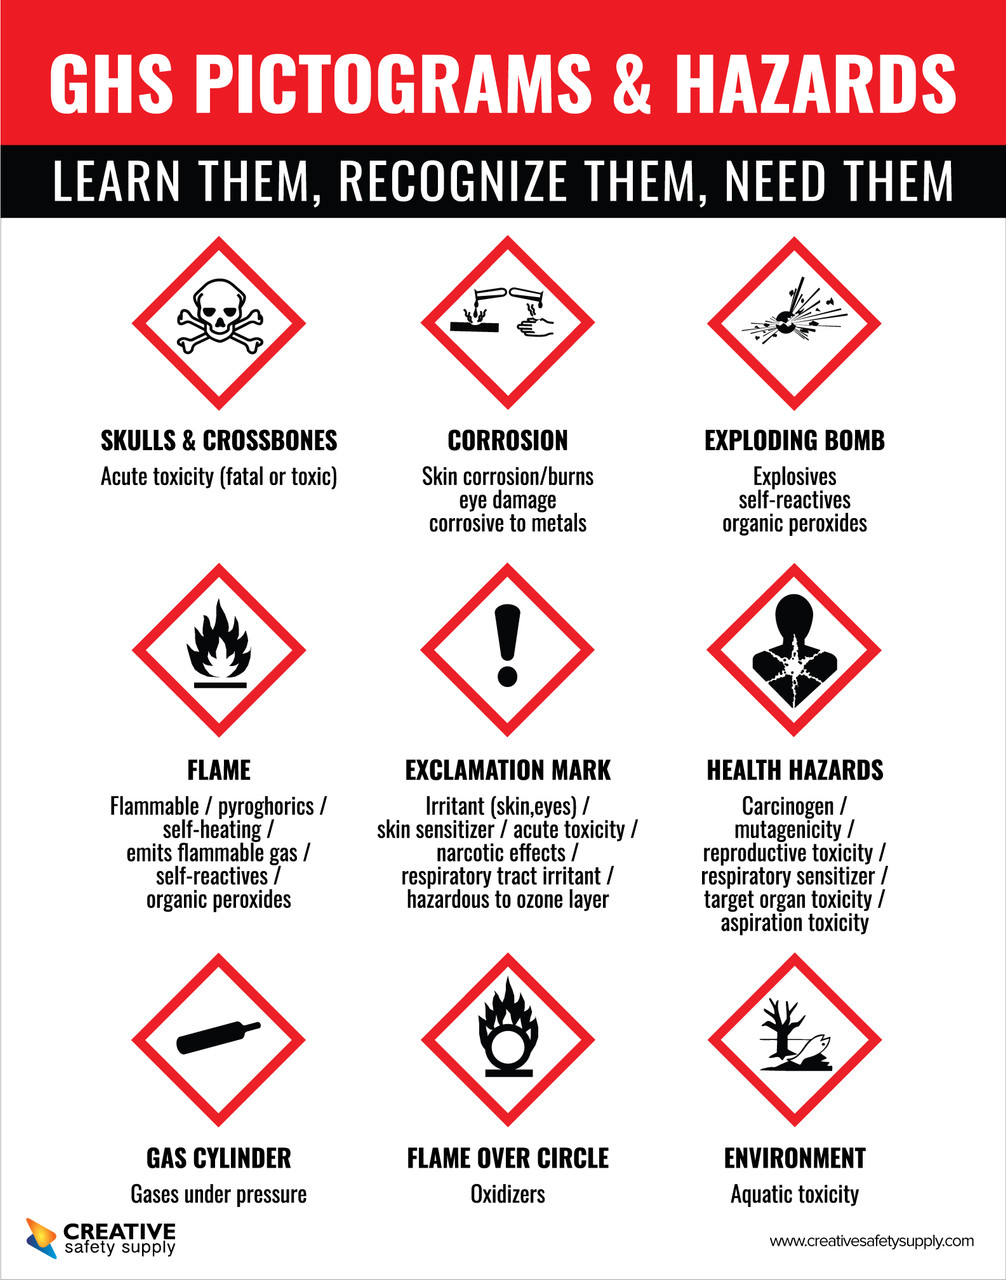 ghs pictograms and hazards learn them recognize them need them poster